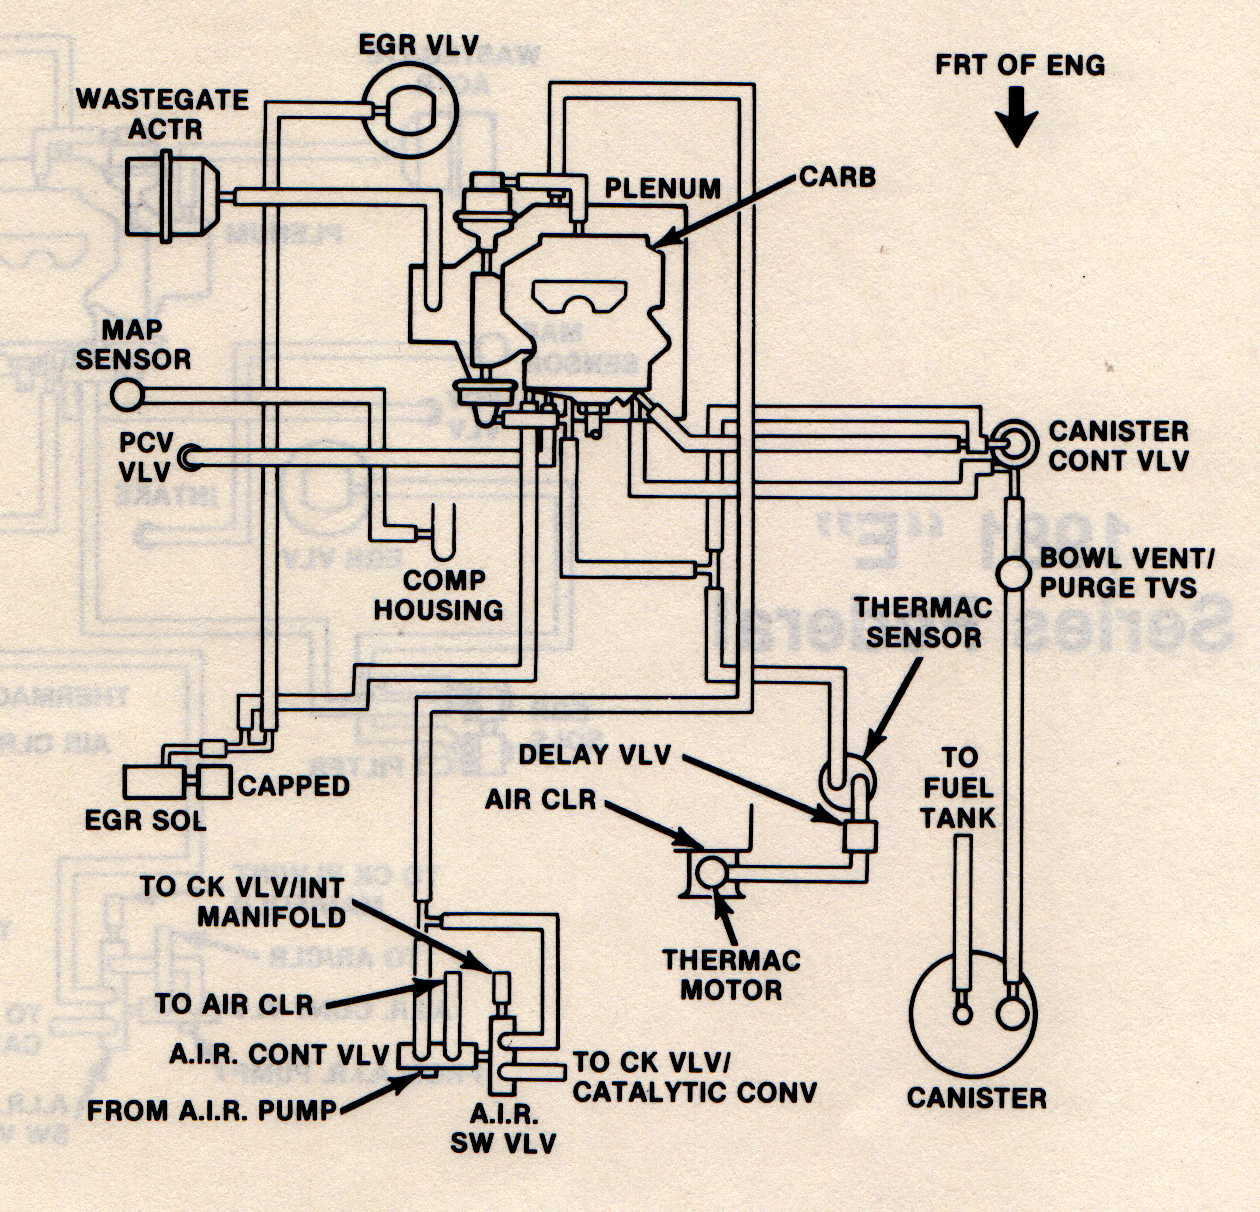 hight resolution of 1981 turbo trans am wiring diagram diy enthusiasts wiring diagrams u2022 68 firebird wiring schematic